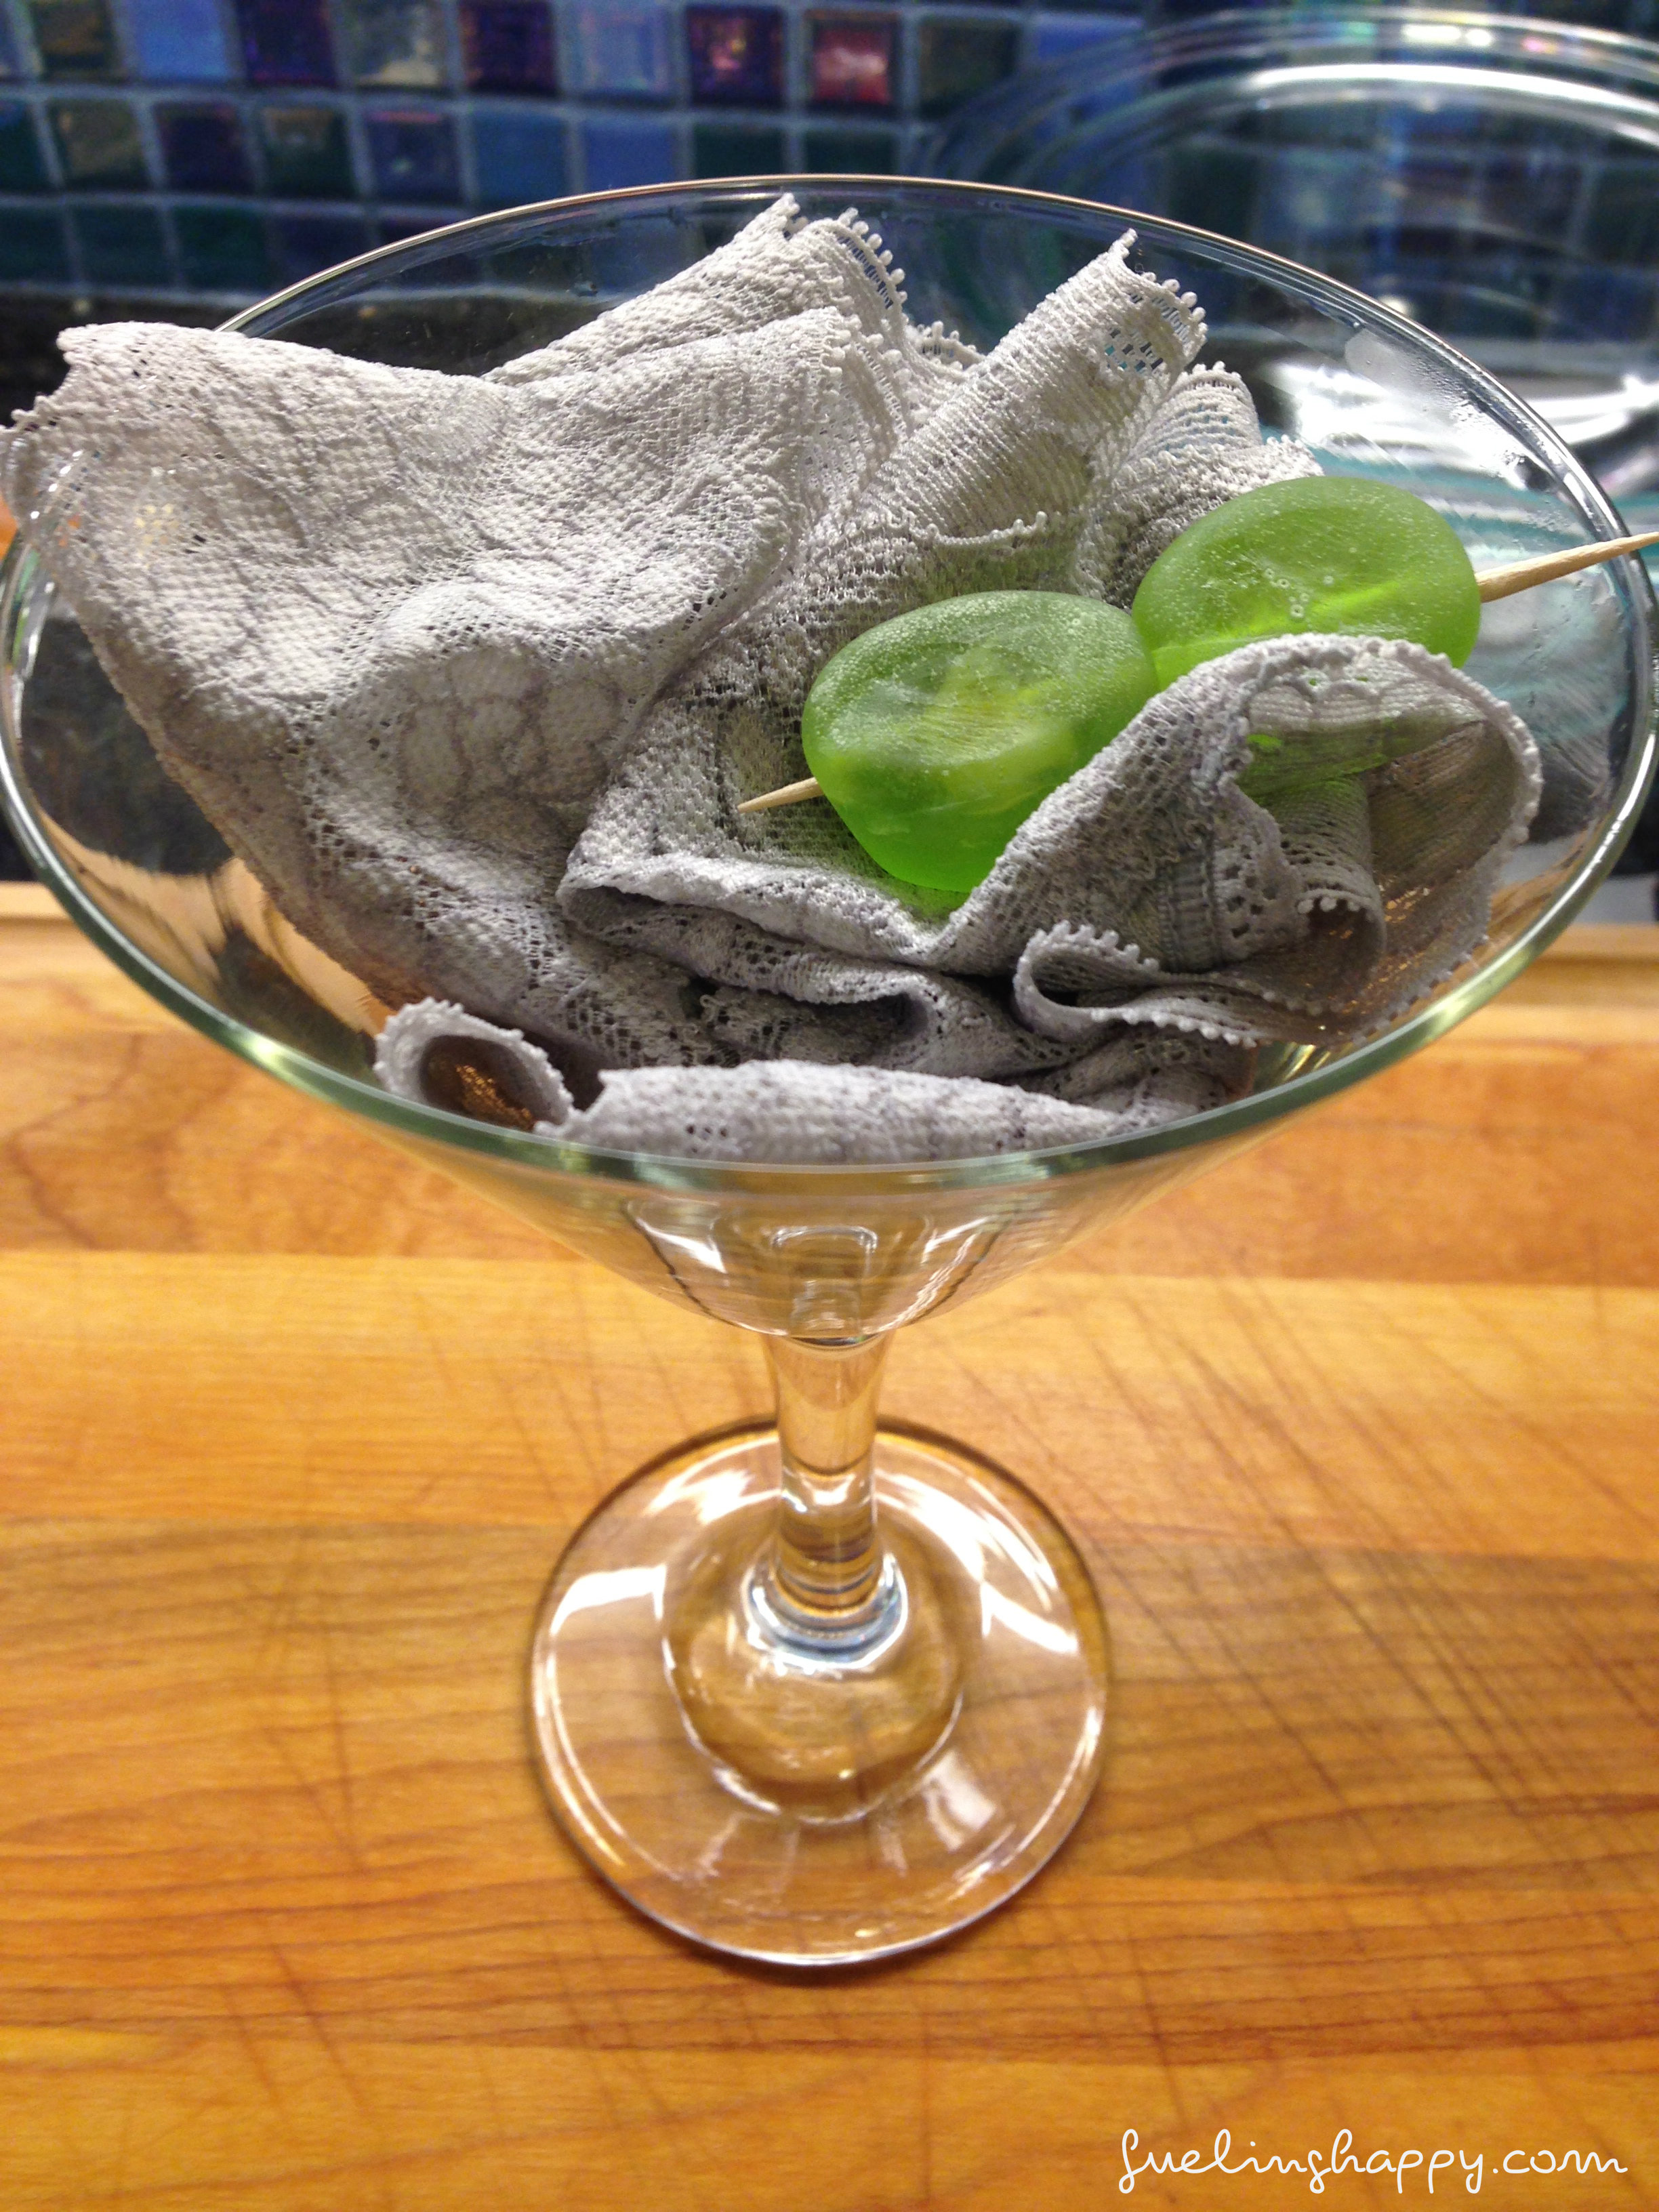 dirty martini dating Oakville speed dating will be at dirty martini in oakville, on on friday, may 20, 2016 the doors open at 7:45pm, and the event will get underway around 8:00pm oakville speed dating line-up includes speed dating dirty martini is located at 2075 winston park drive, oakville, on cutoff for online .